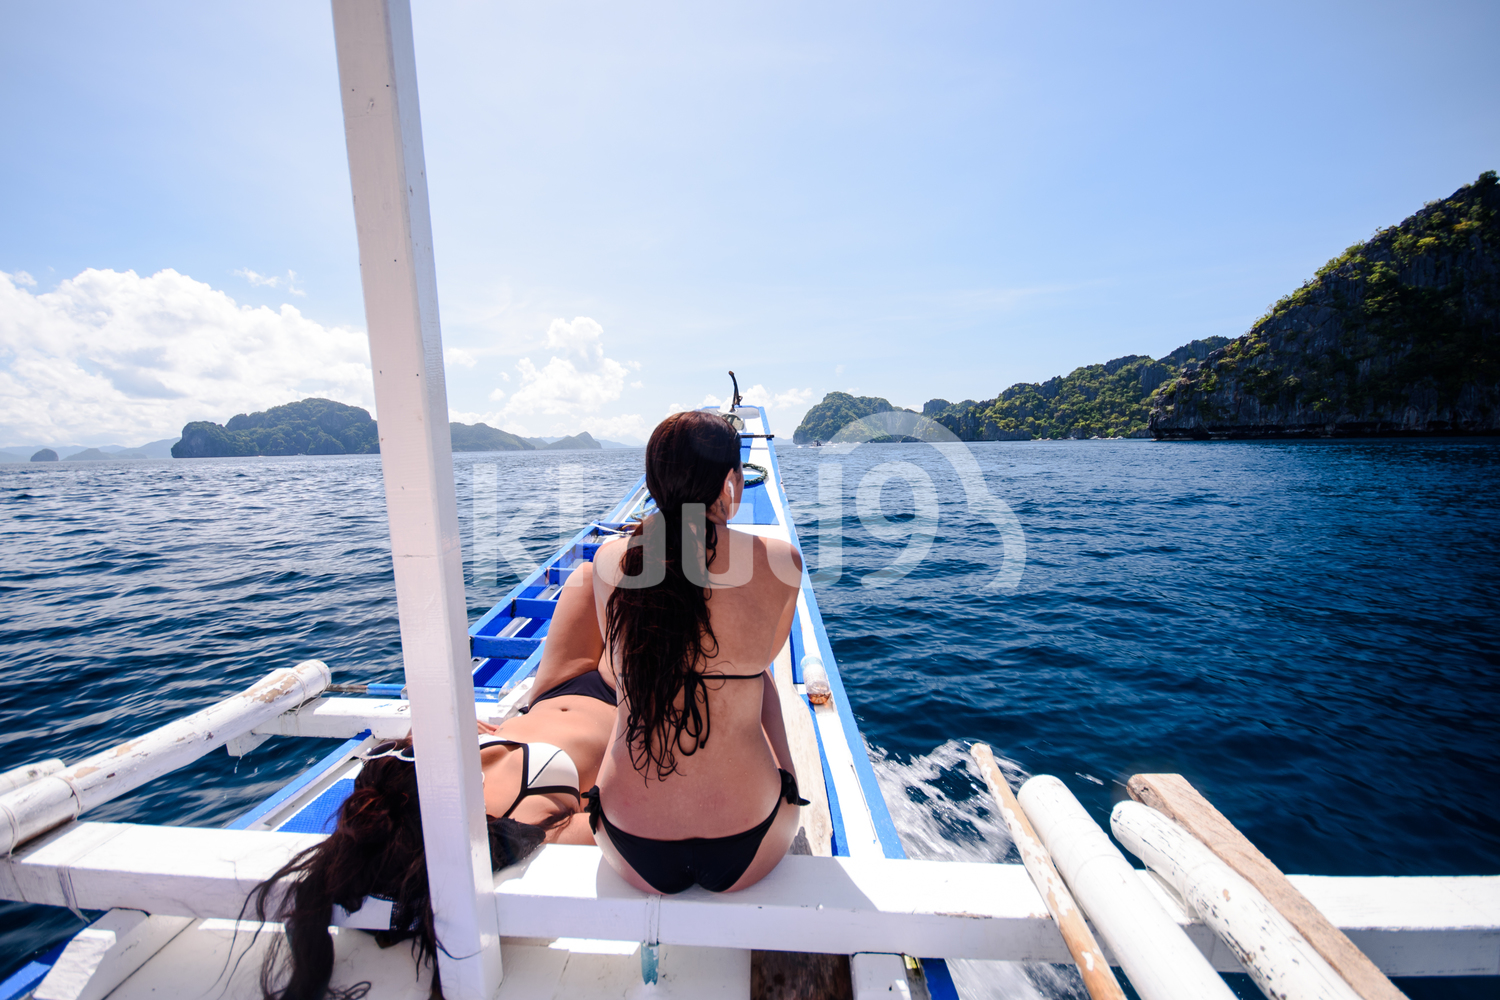 Heading for an island adventure on El Nido, Palawan